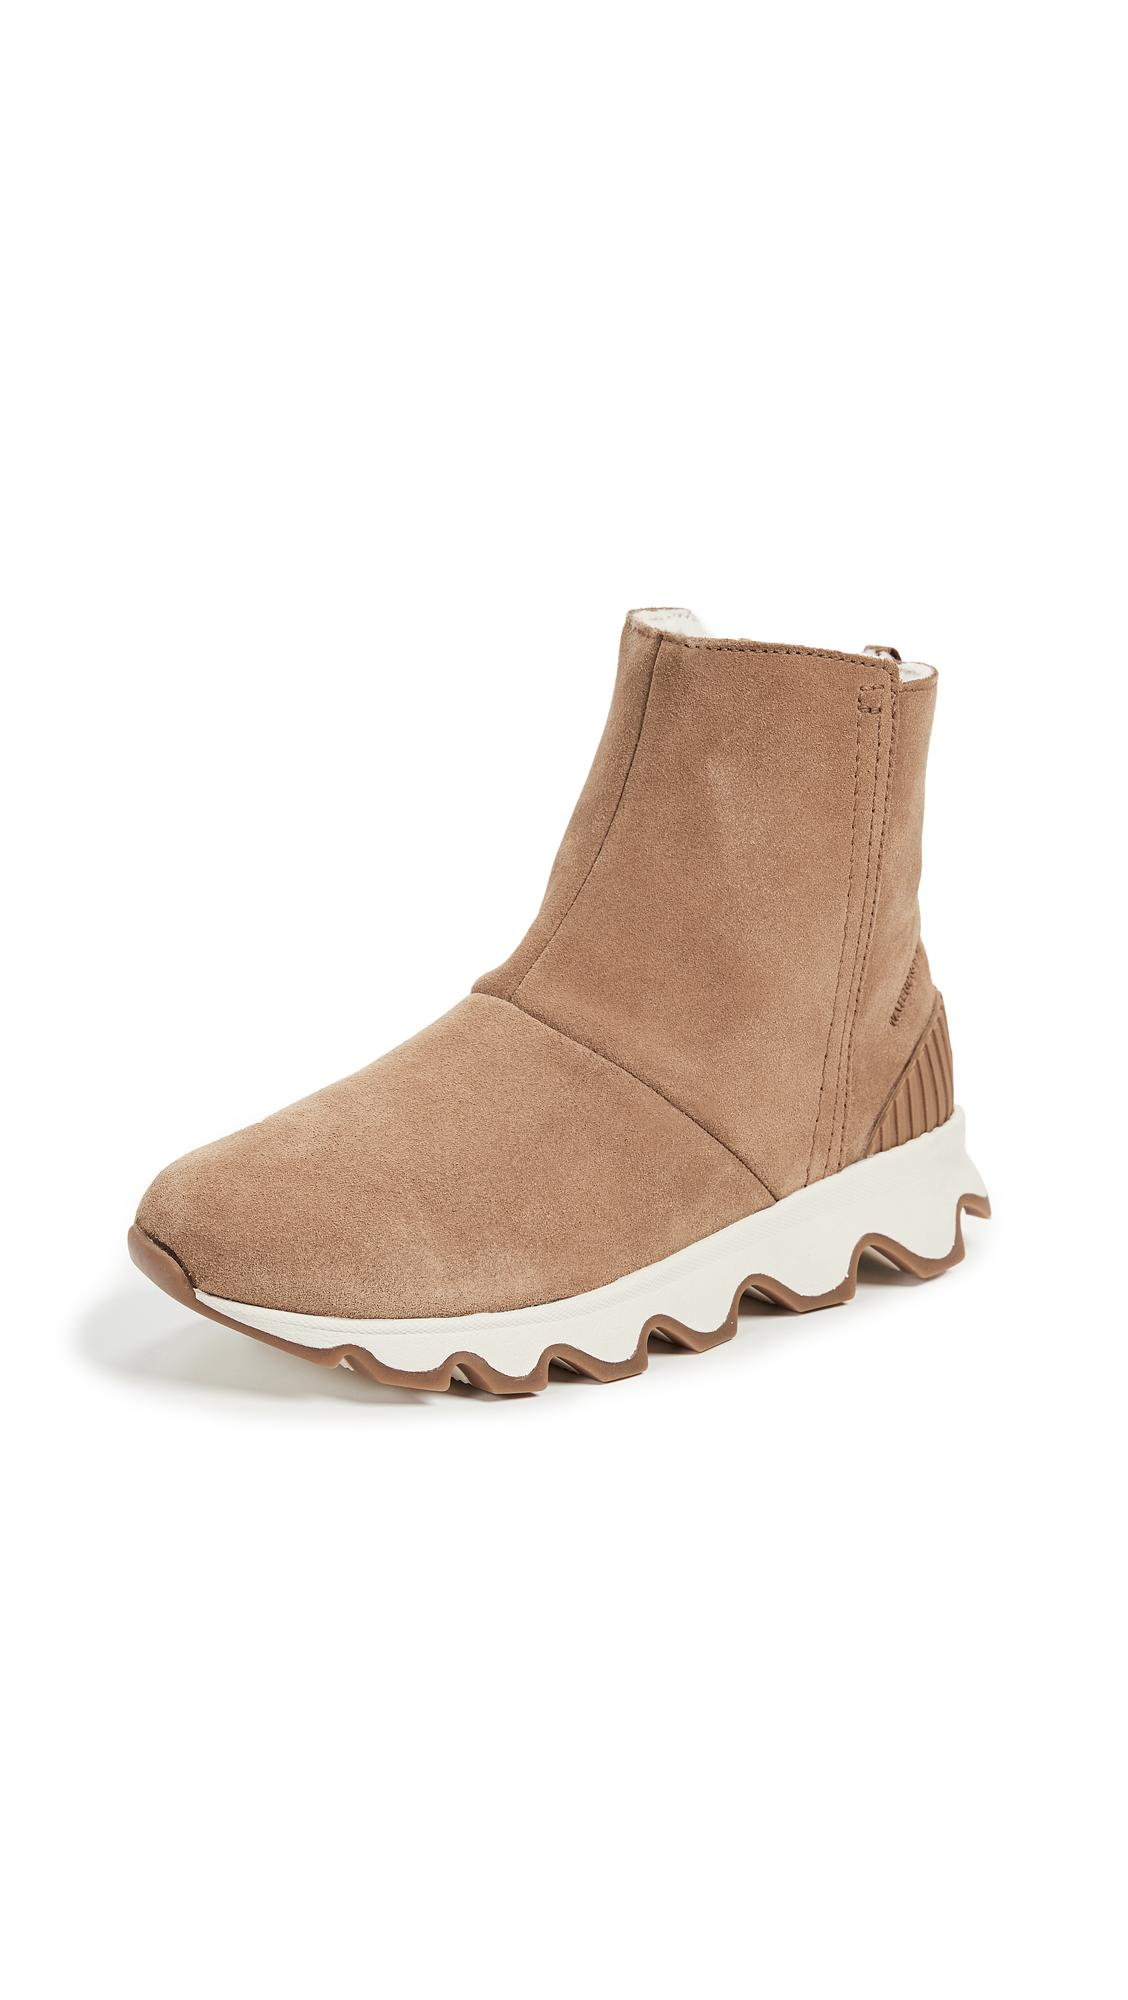 24deb4a698bbd Kinetic Short Booties